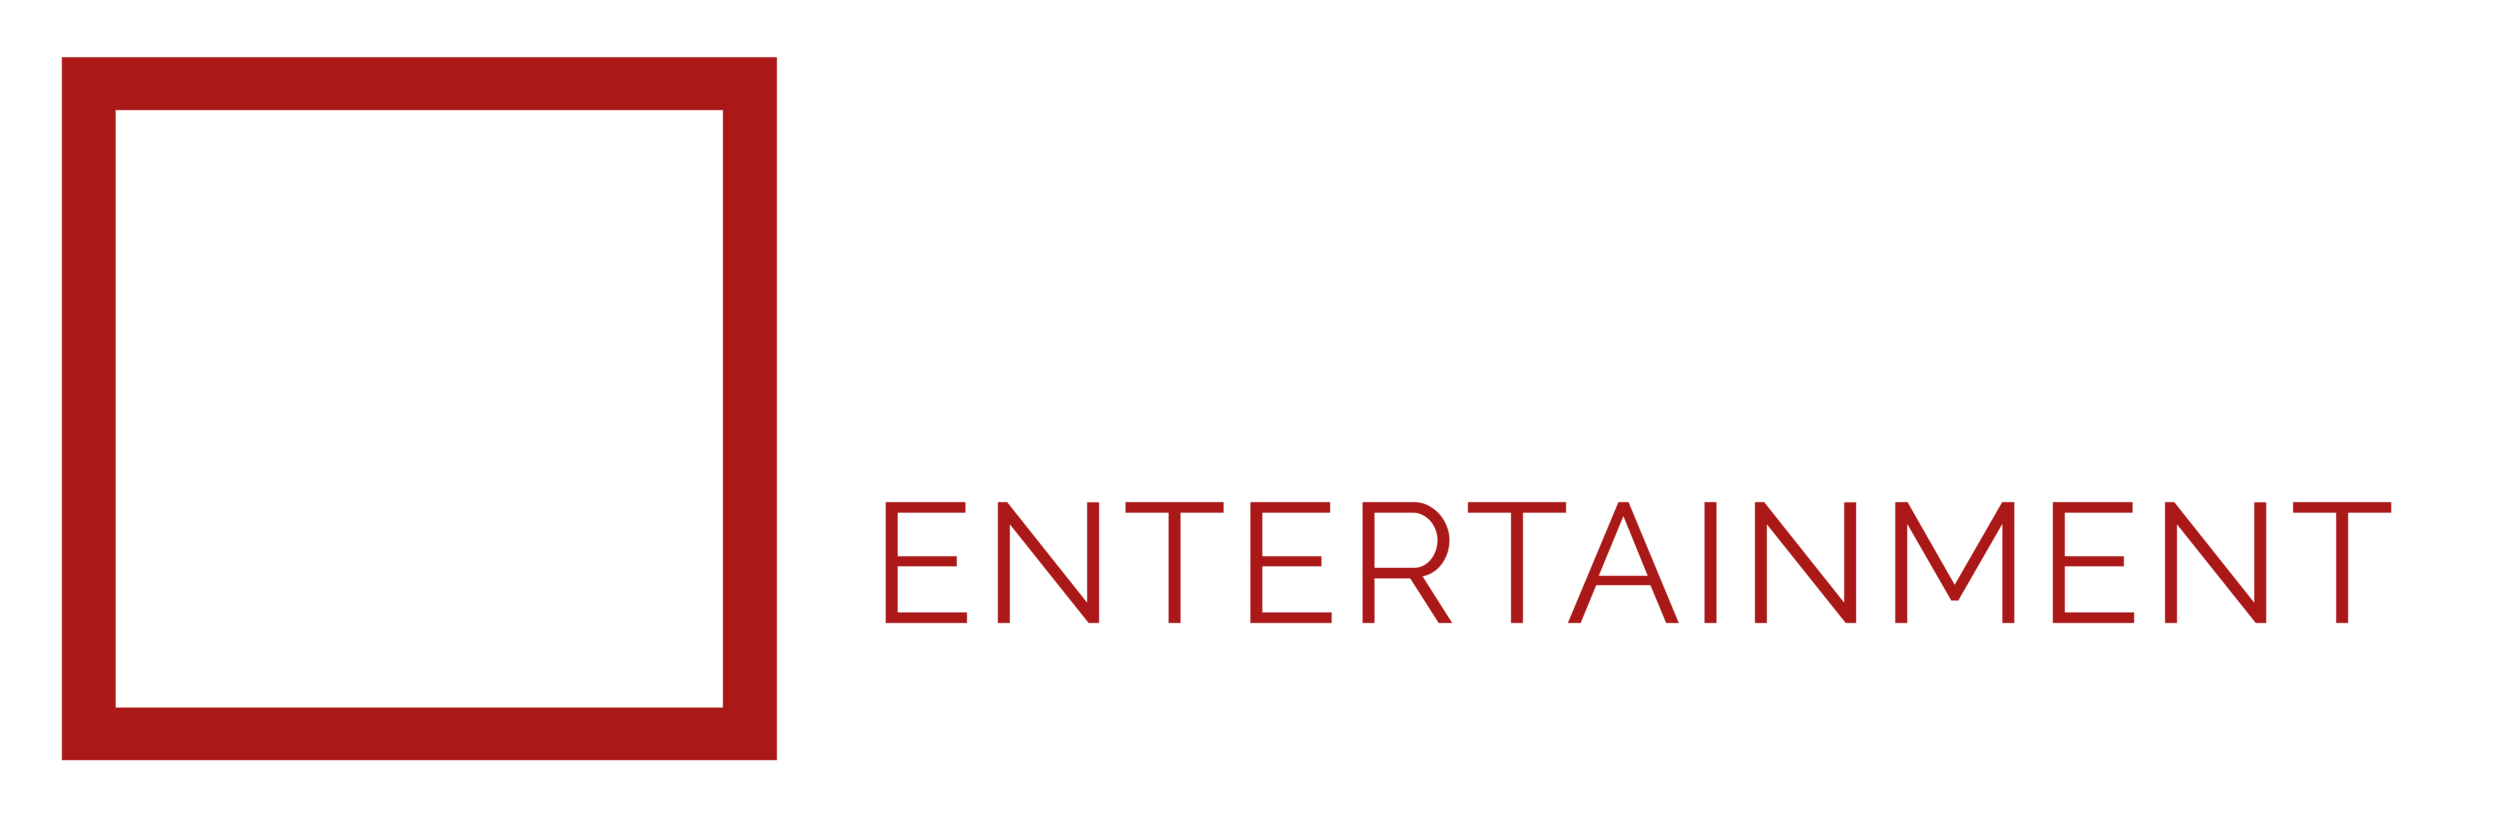 Elements-Entertainment-logo.png